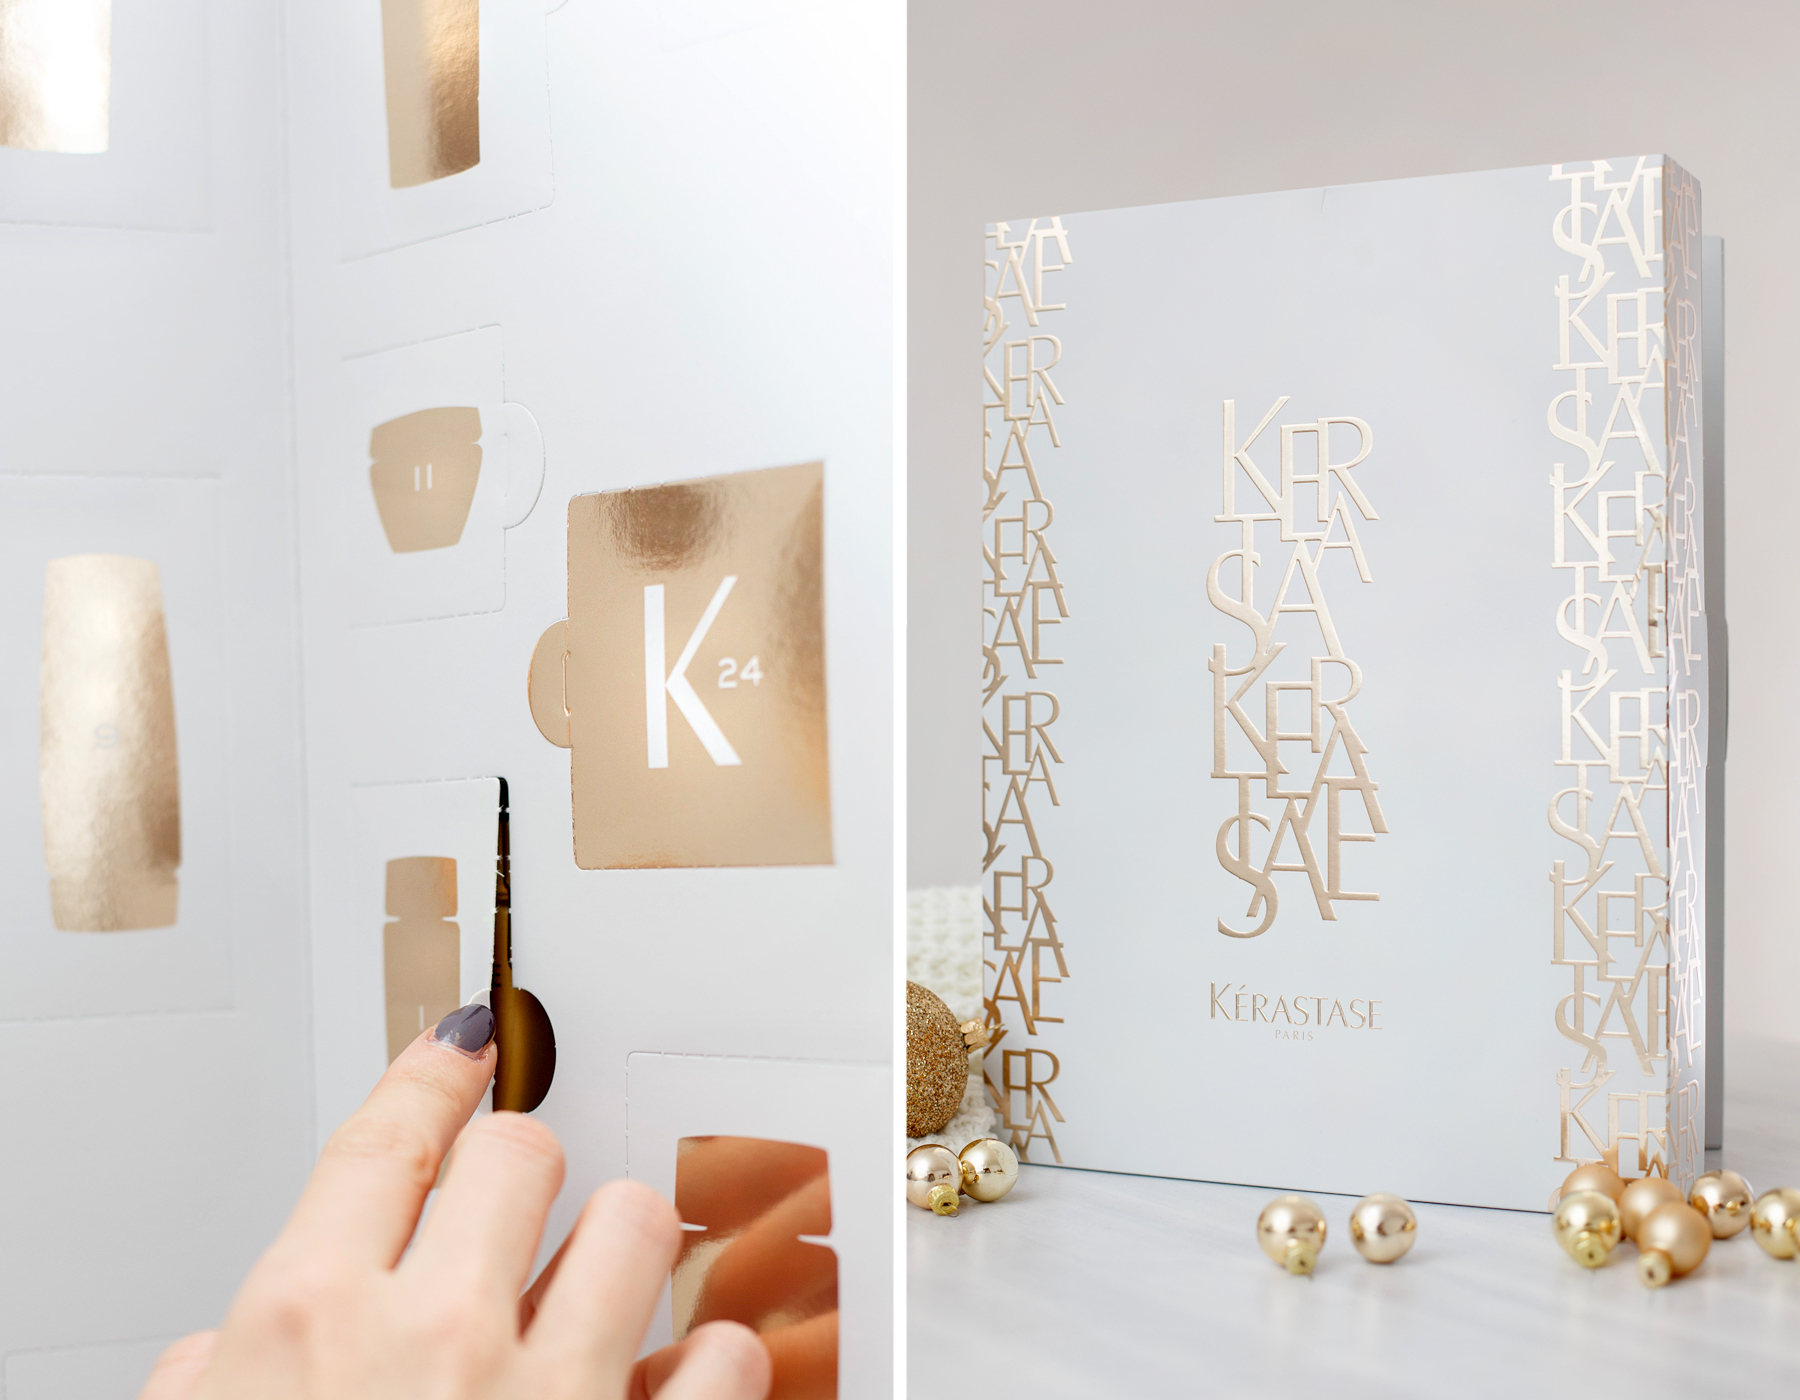 kérastase adventskalender advent calendar golden christmas shiny luxury hair care haircare beautyblogger white christmas winter look beautiful glamorous geschenk gift cats & dogs fashionblog ricarda schernus beauty blogger 5